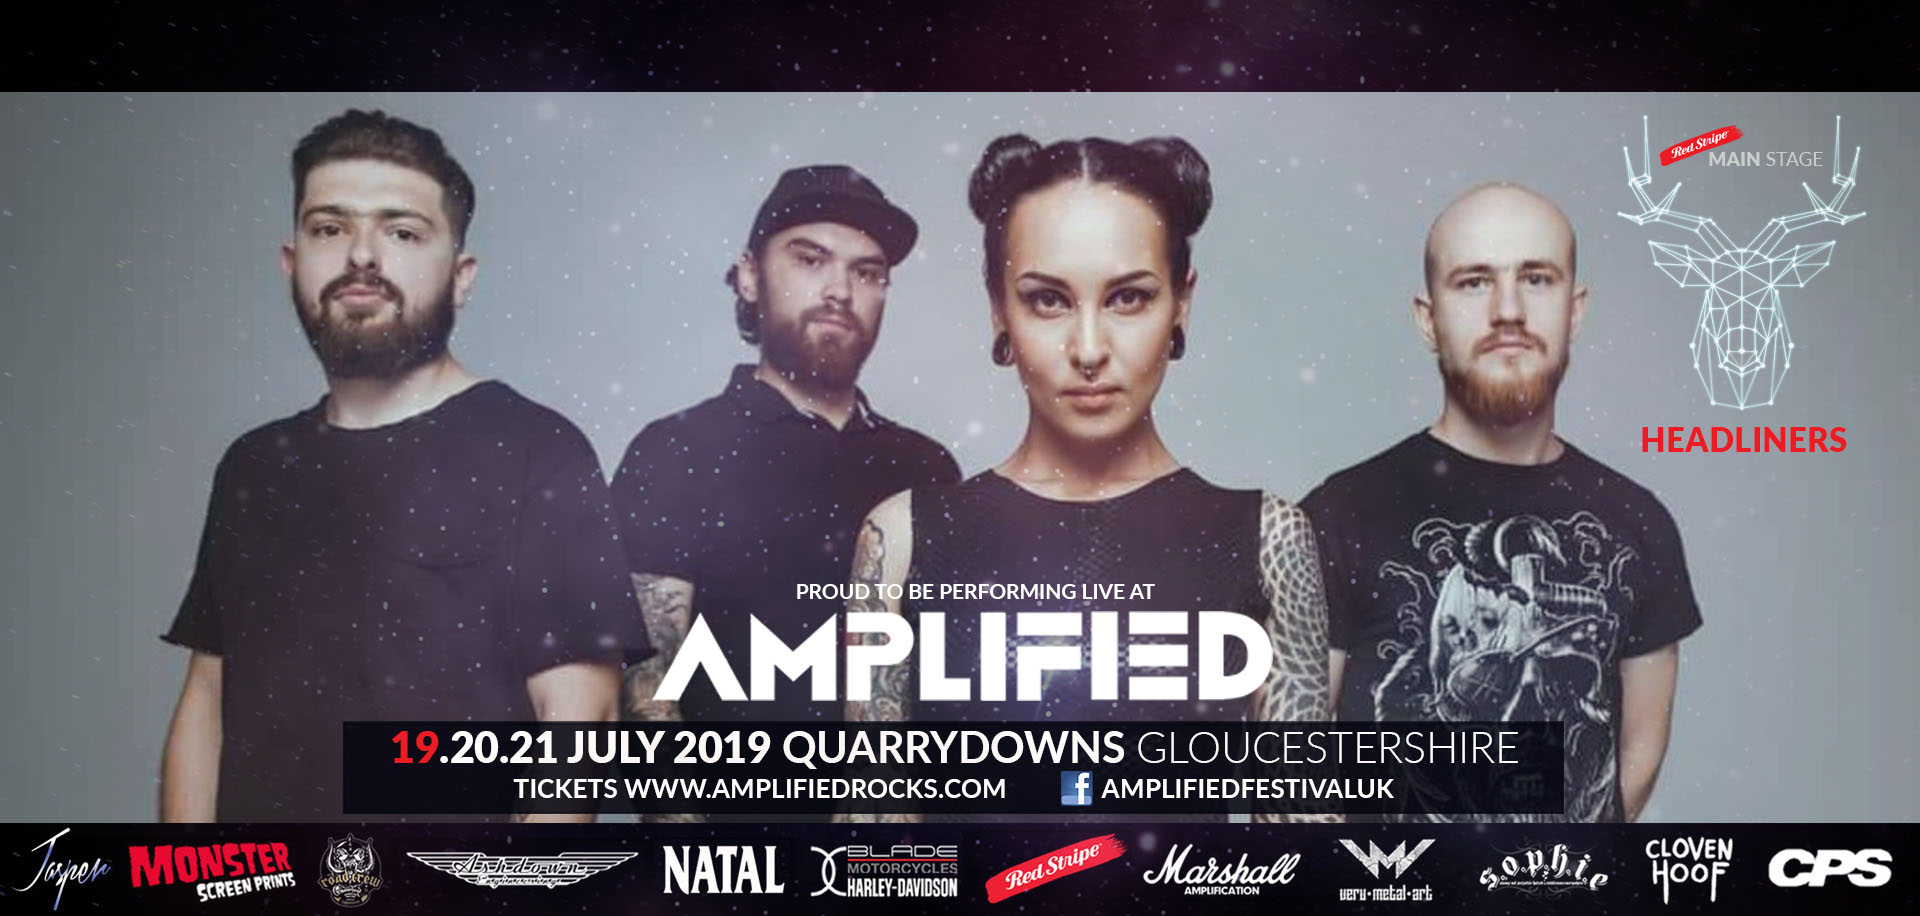 Festival News: Amplified Festival 2019: Friday Main Stage Headliner, VMA Stage Headliners And More Confirmed Acts